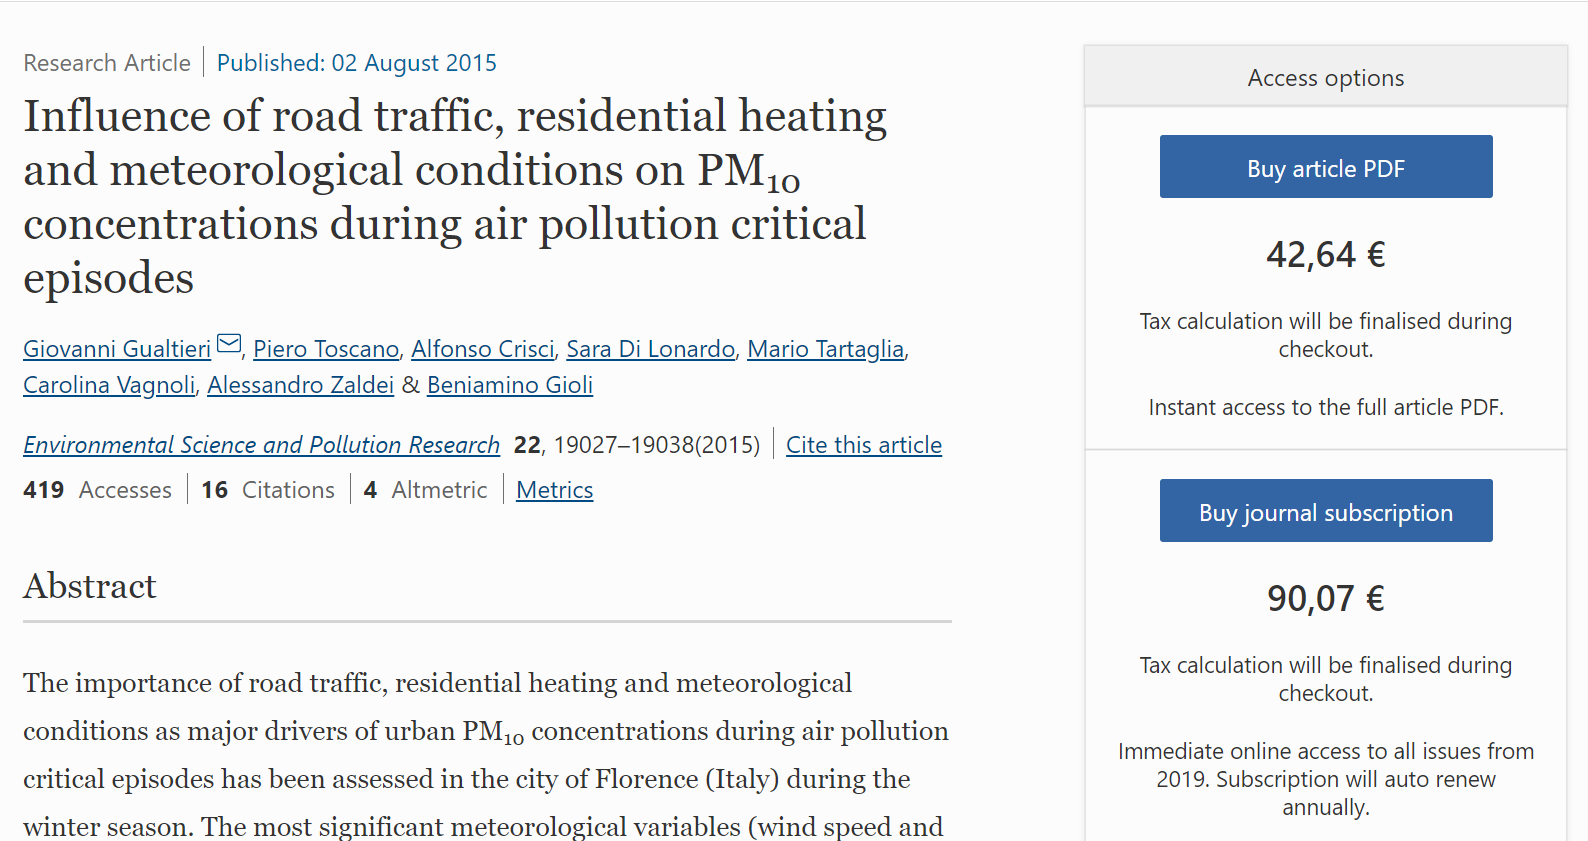 Influence of road traffic, residential heating and meteorological conditions on PM10 concentrations during air pollution critical episodes